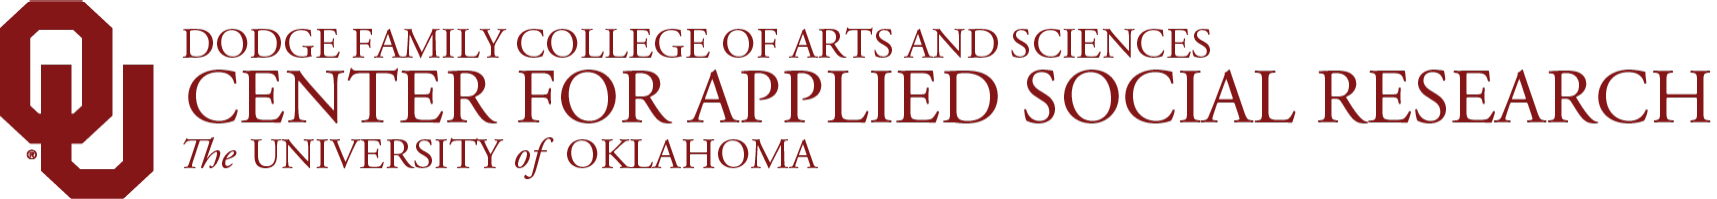 Center for Applied Social Research, The University of Oklahoma website wordmark